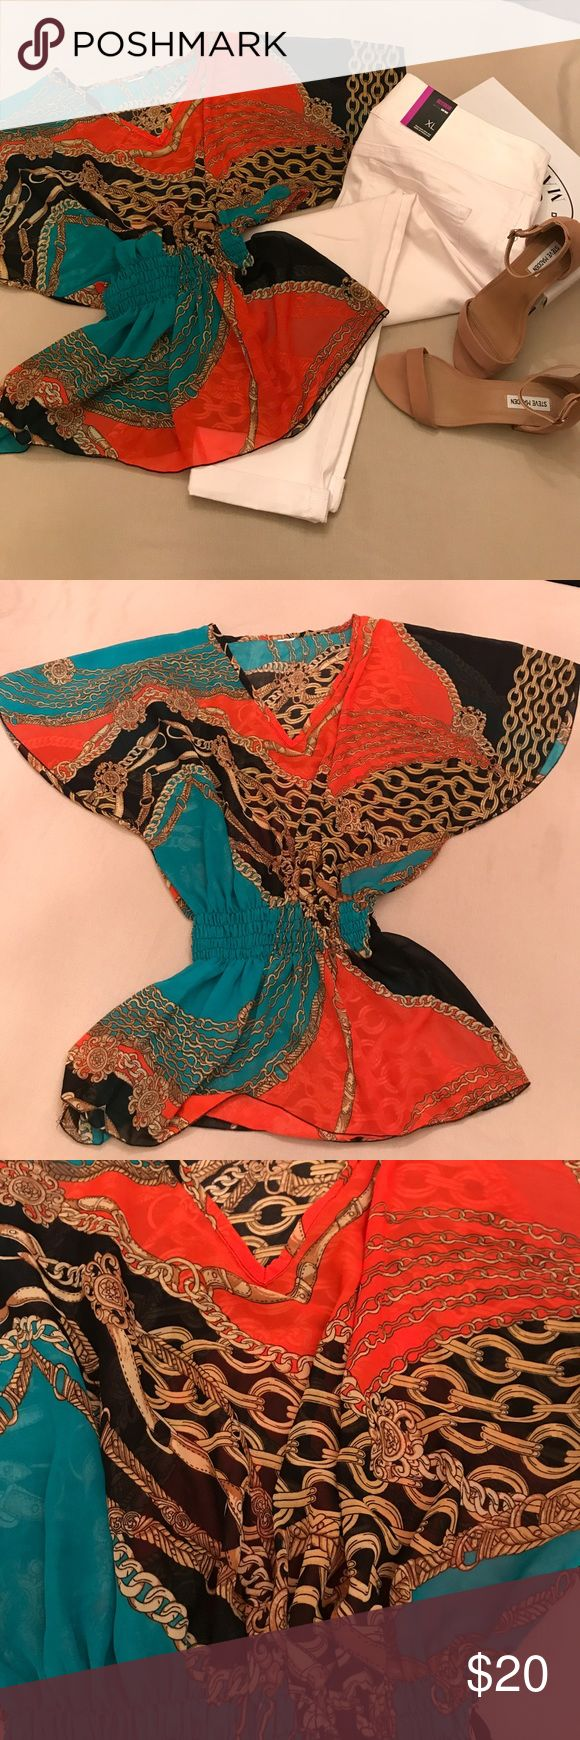 Woman's flutter sleeve Flutter sleeve, v neck, smocked waist woman's top Turquoise, orange, black with a chain pattern running throughout the top. Tops Blouses